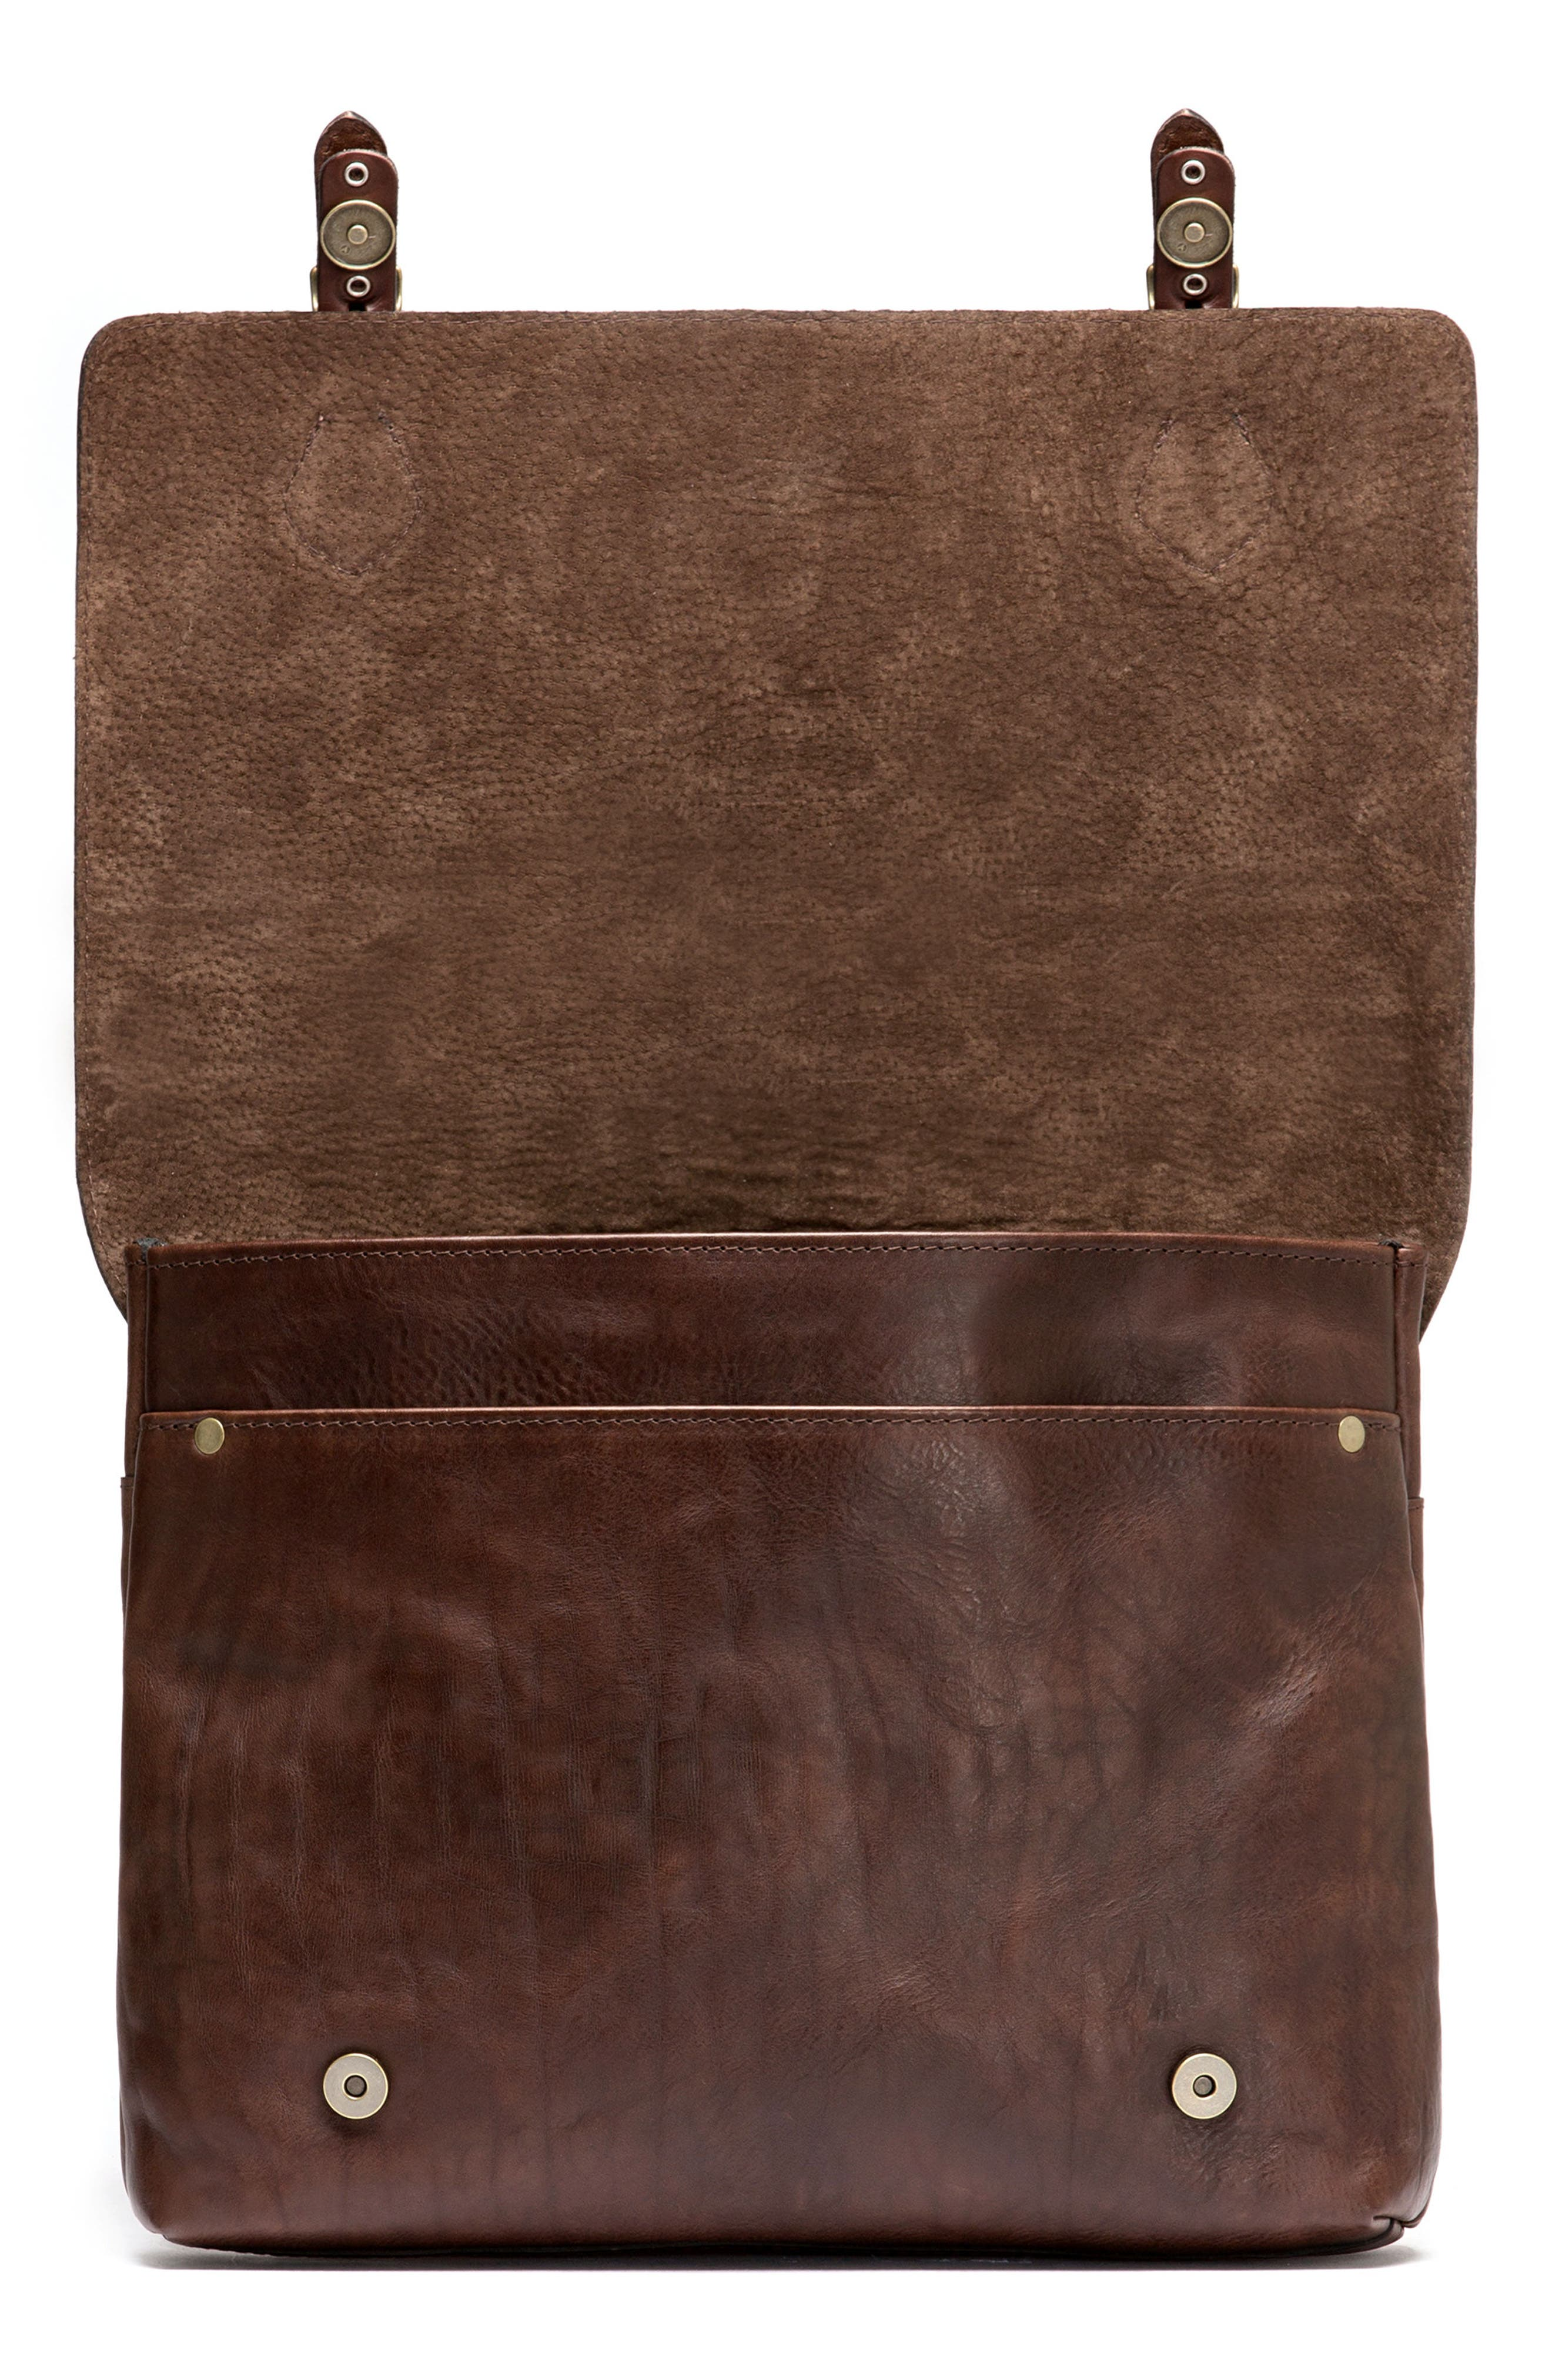 Woodstock Leather Satchel,                             Alternate thumbnail 4, color,                             Cocoa